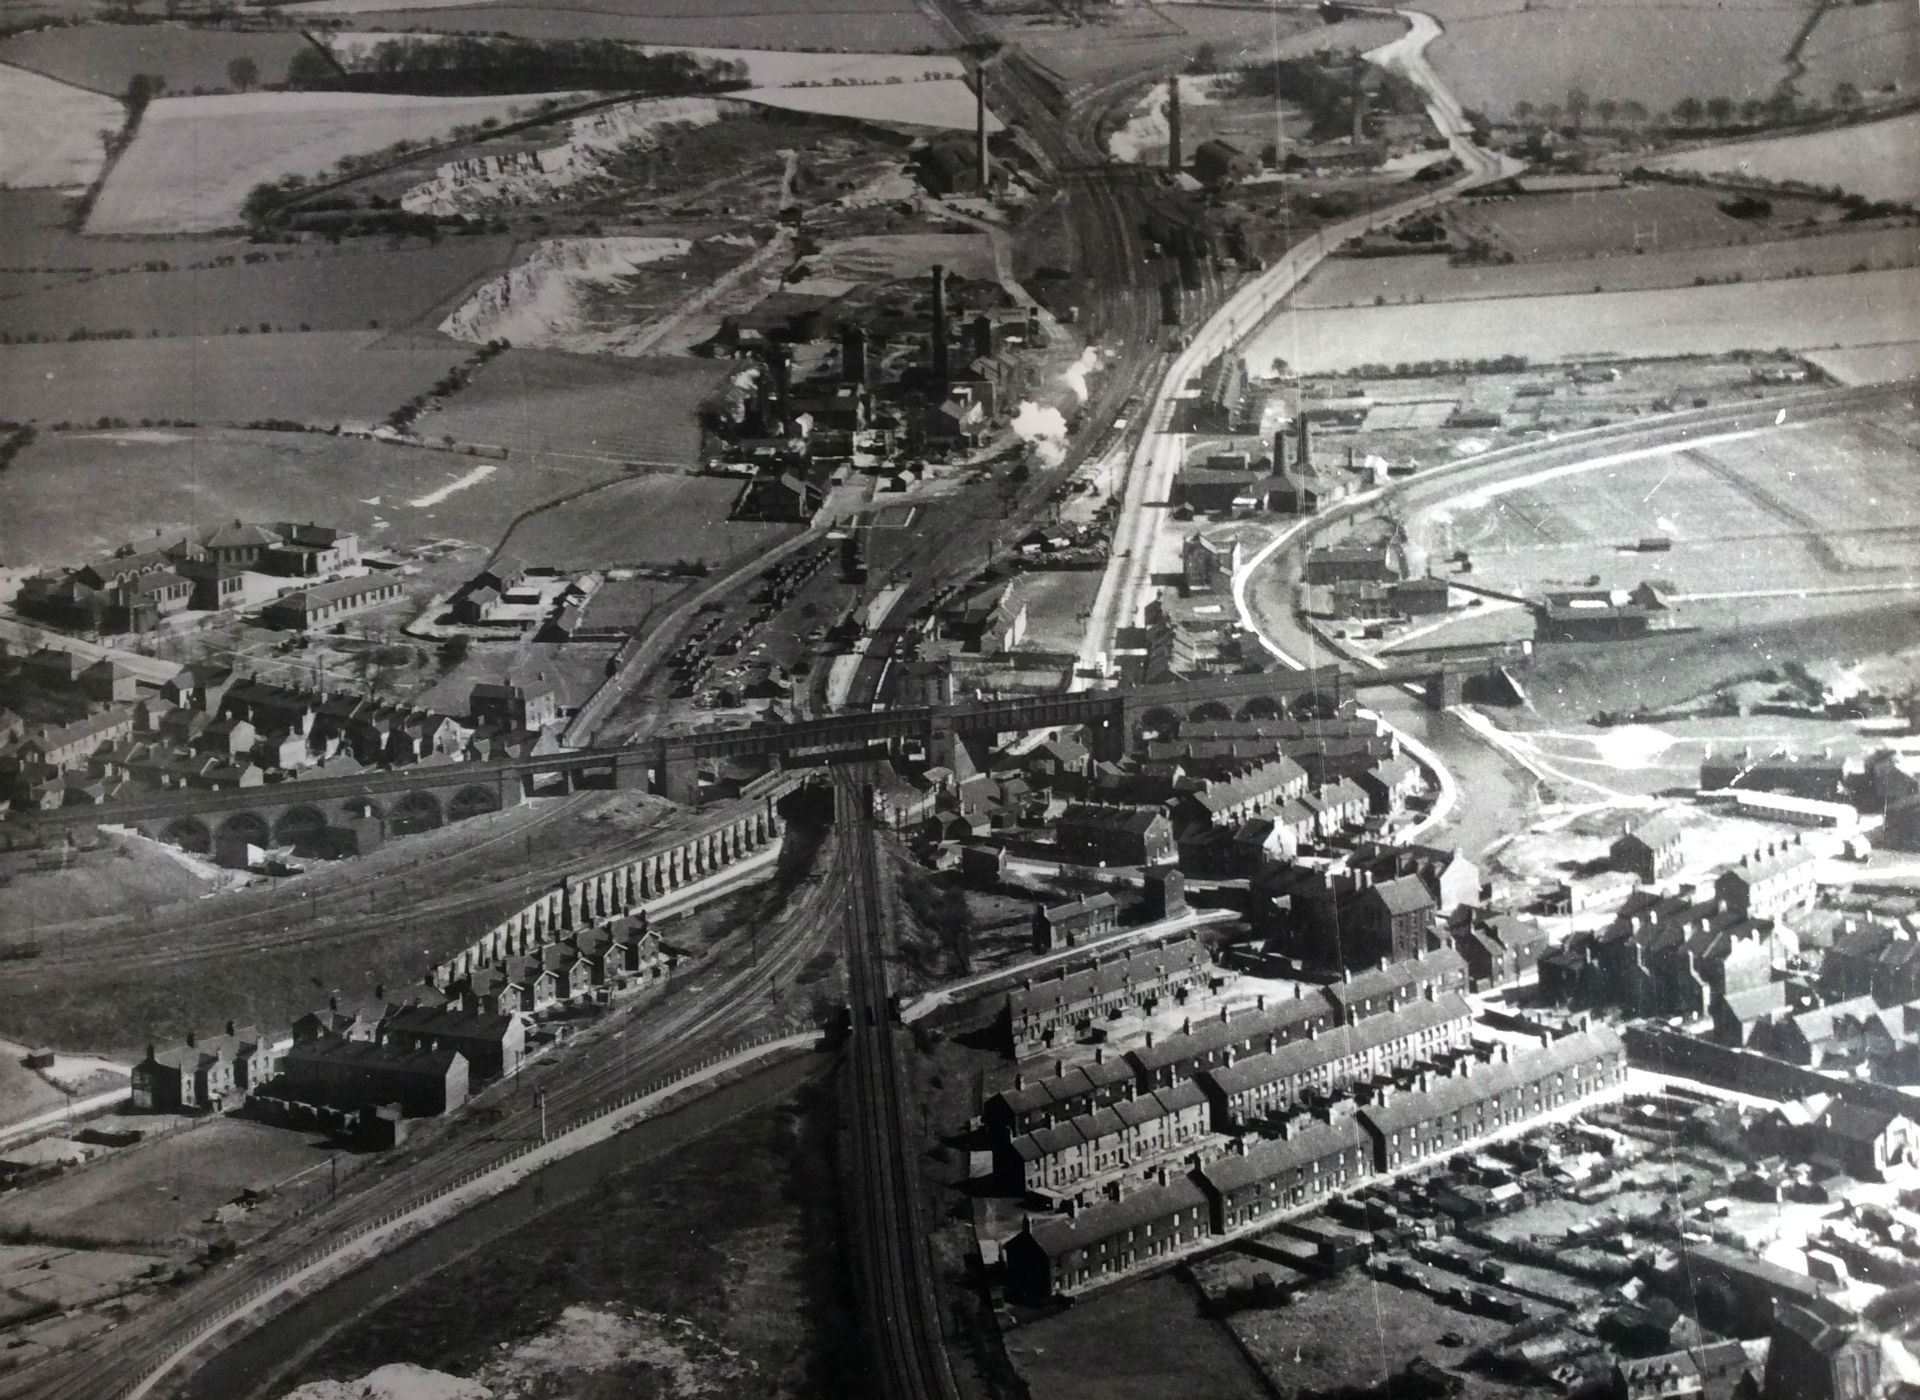 P1 Stairfoot and Ardsley Aerial Photo 1951